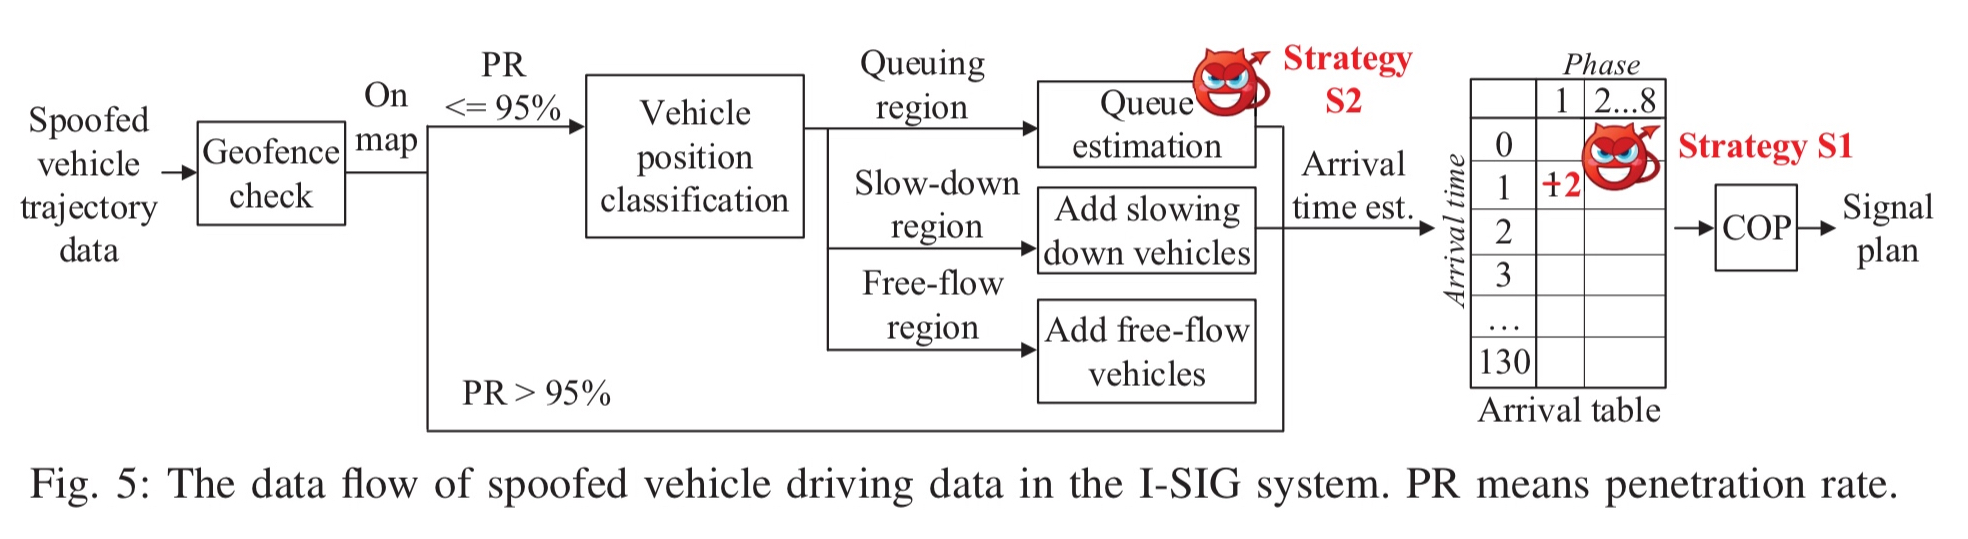 Exposing Congestion Attack On Emerging Connected Vehicle Based Trafficsignals Analysis Diagram System Infrastructure All